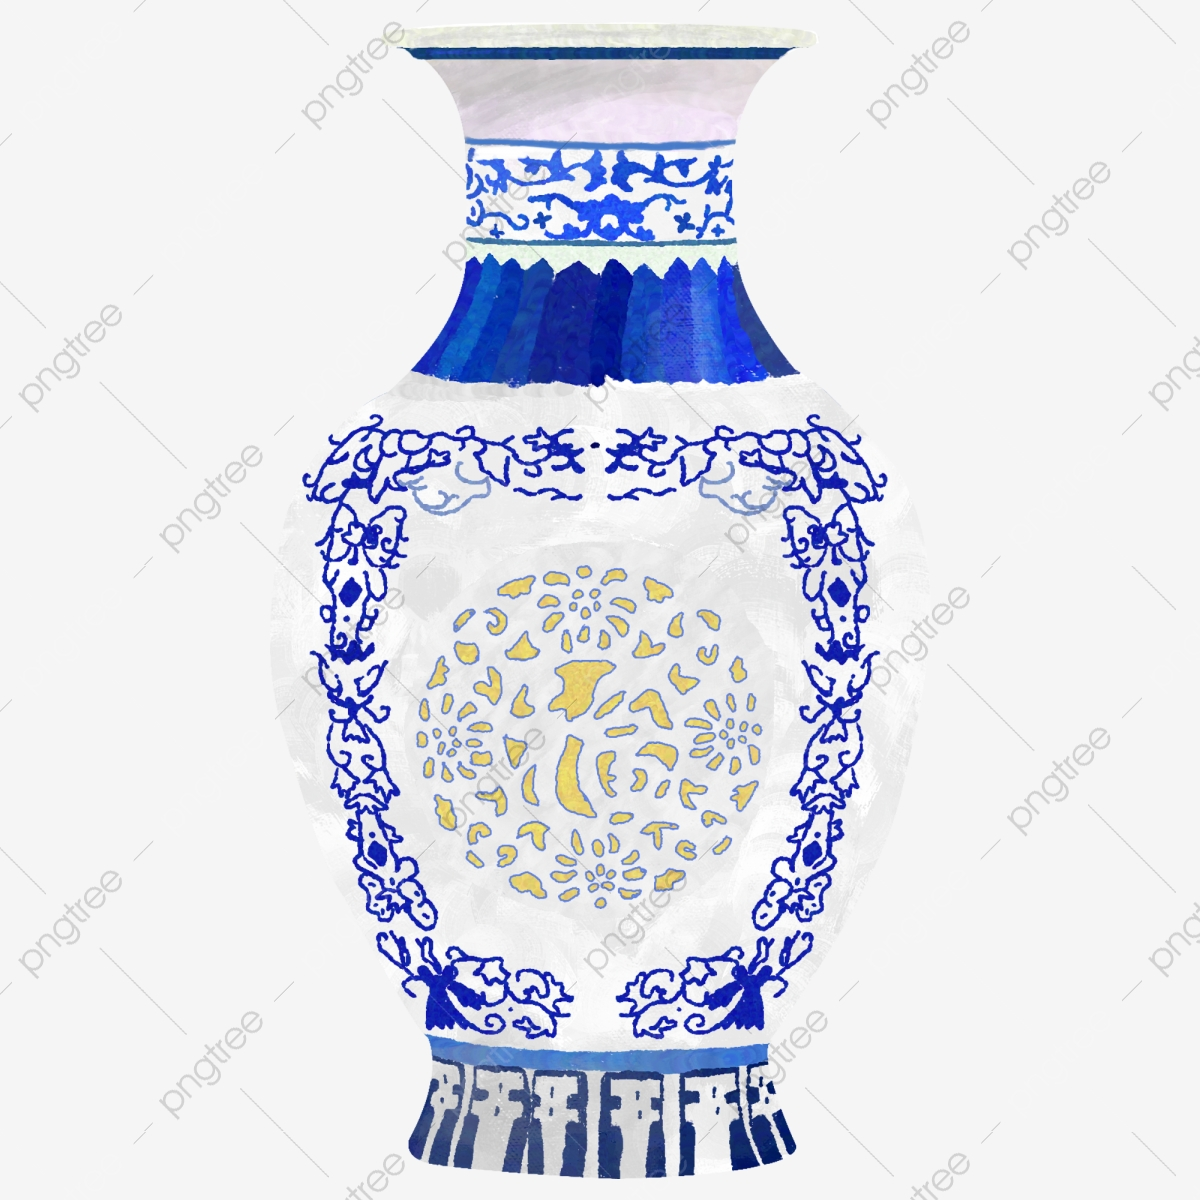 Hand Painted Painting Blue And White Porcelain Bottle Blue And White Porcelain Porcelain Png Classical Png Transparent Clipart Image And Psd File For Free Download